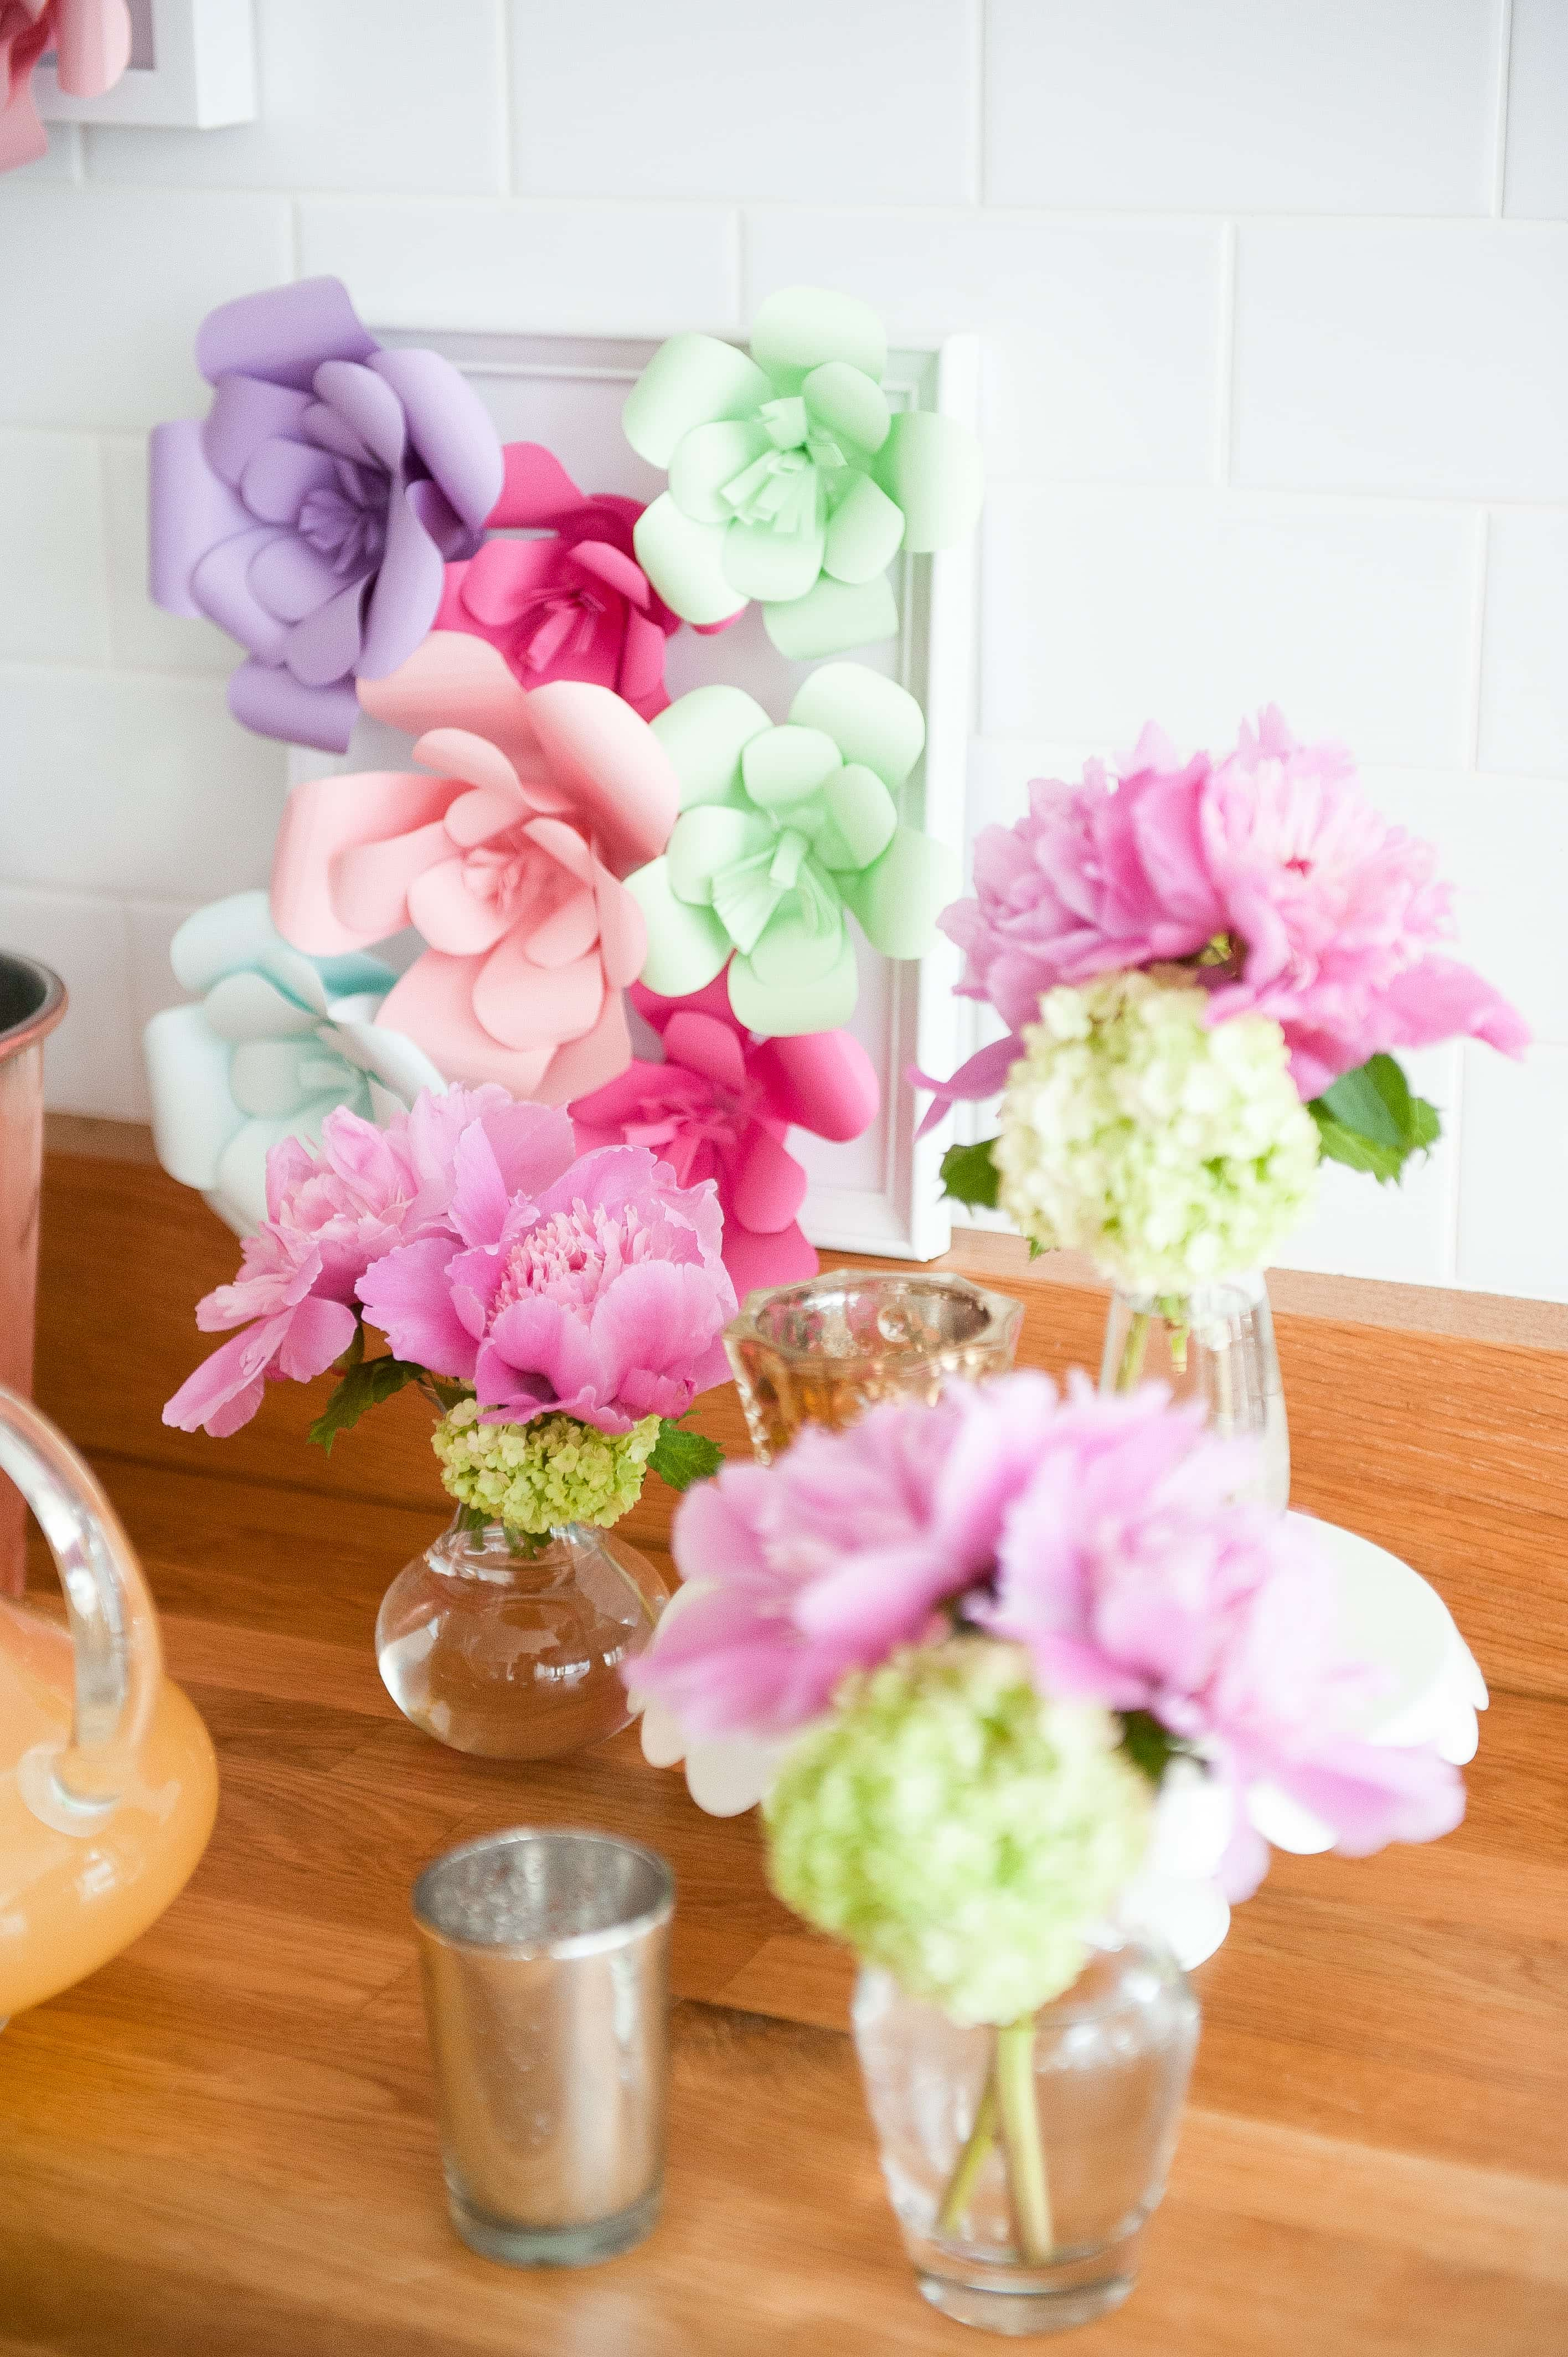 Diy paper flower backdrop best friends for frosting cardstock paper in variety of colors mightylinksfo